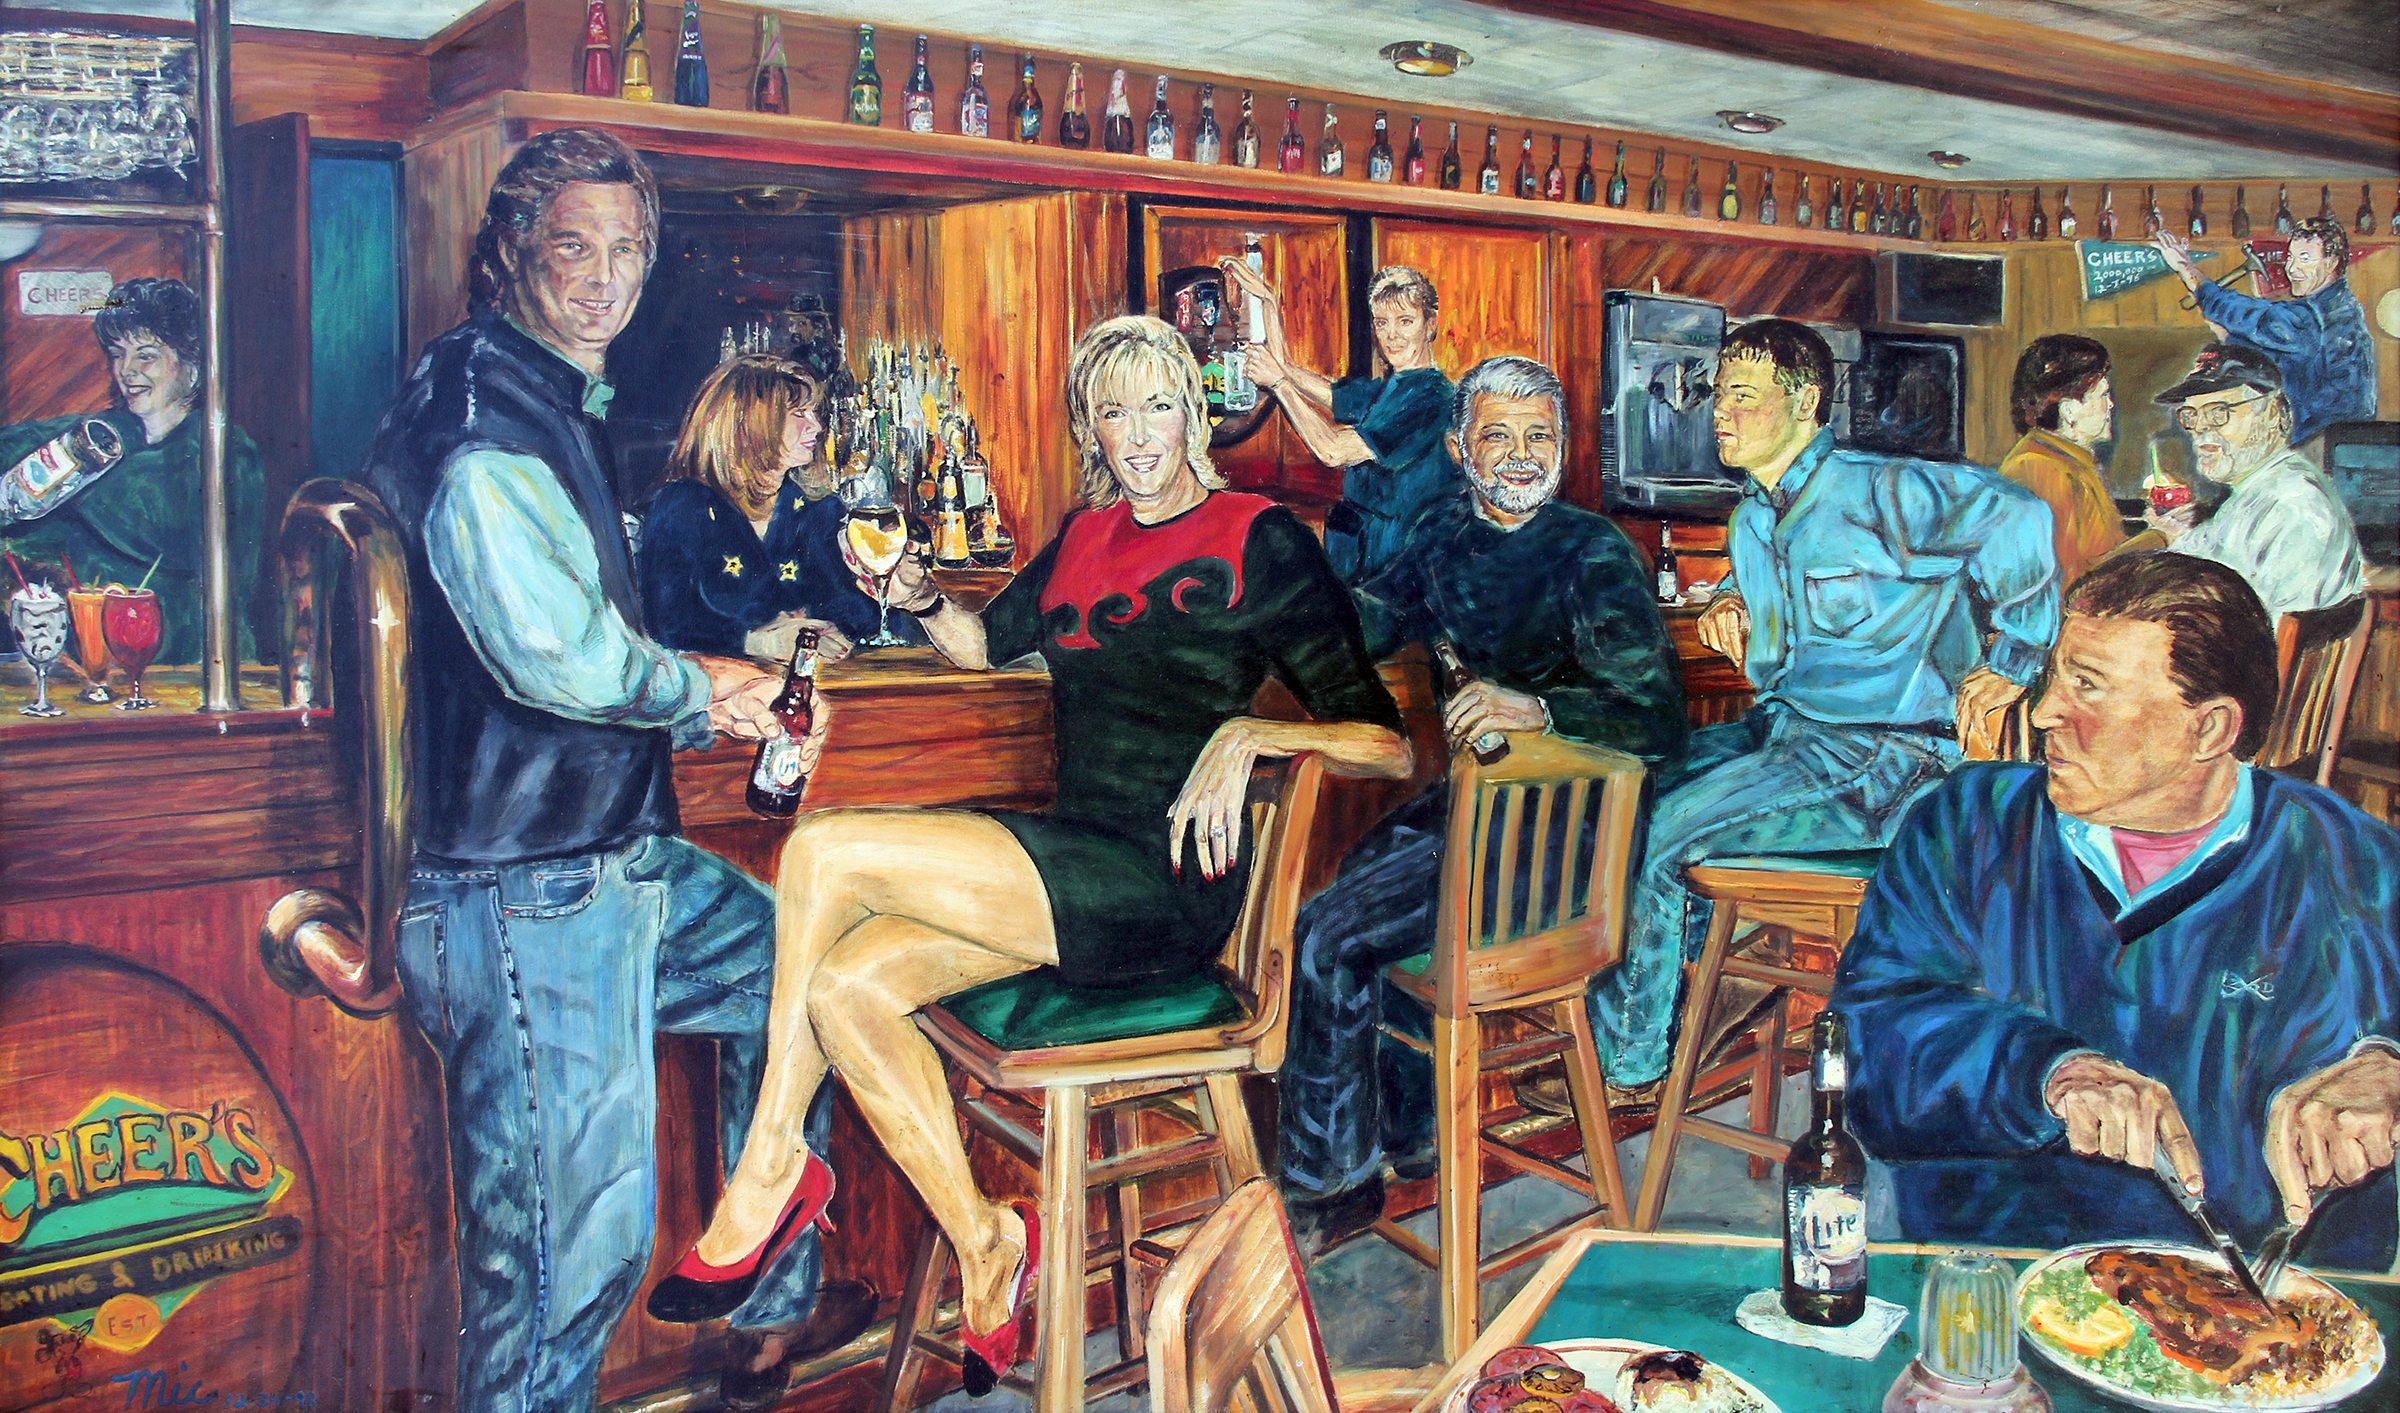 Cheers good time saloon - Private Collection Jim WilsonGiclee Limited Edition and canvas prints are available. Please visit the prints gallery.